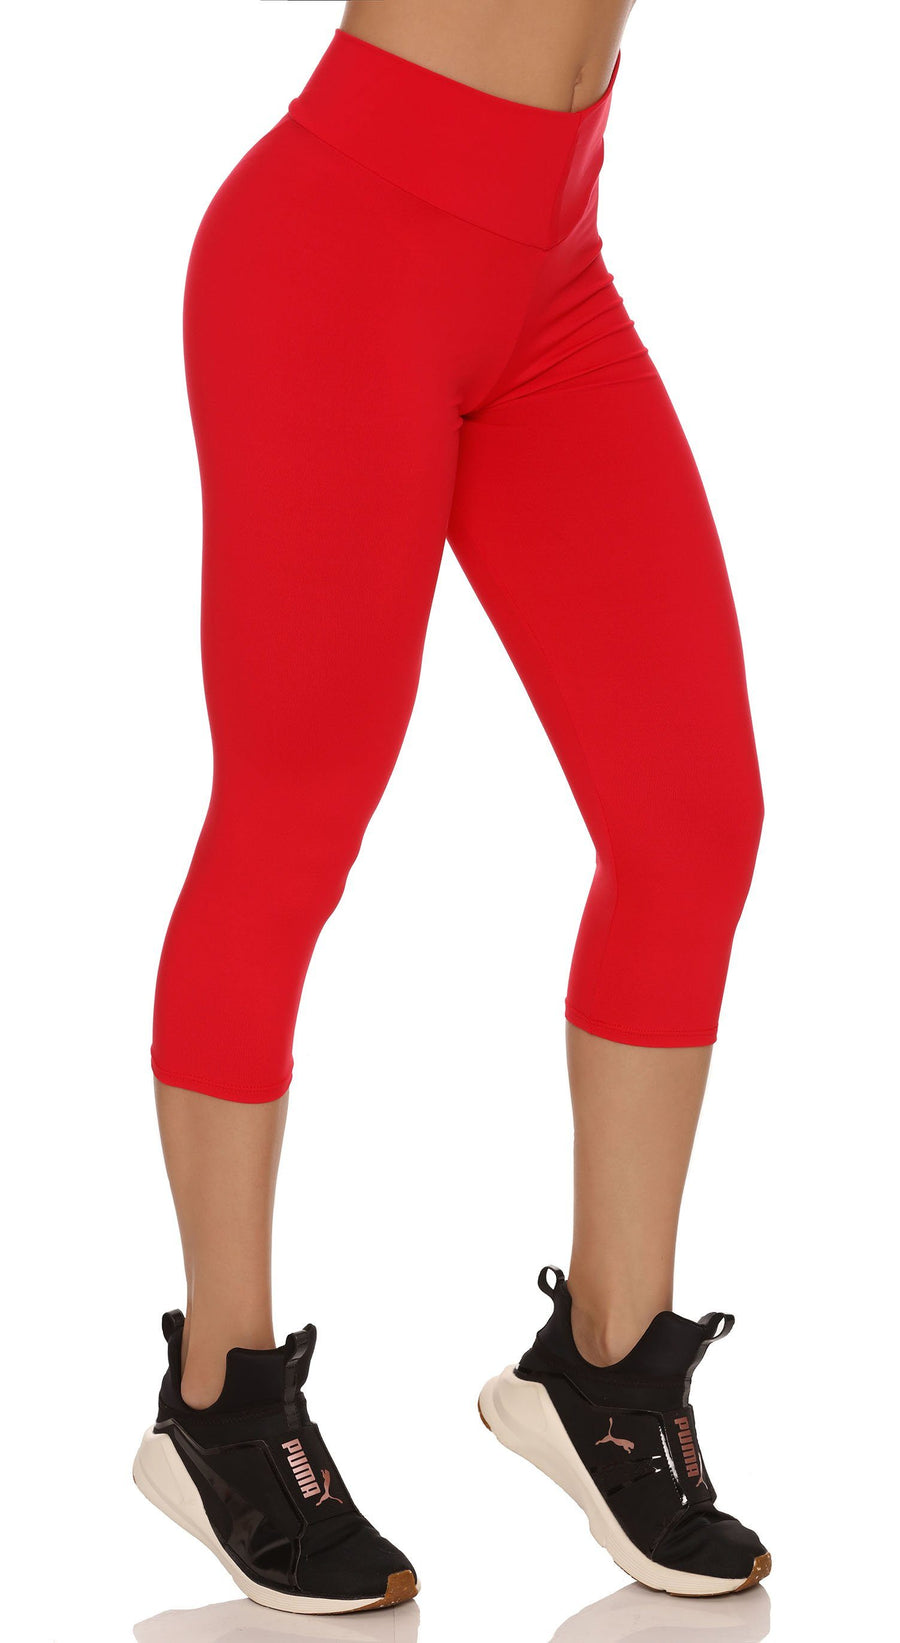 Brazilian Workout Capri Pants - Scrunch Booty Lift! Hot Red